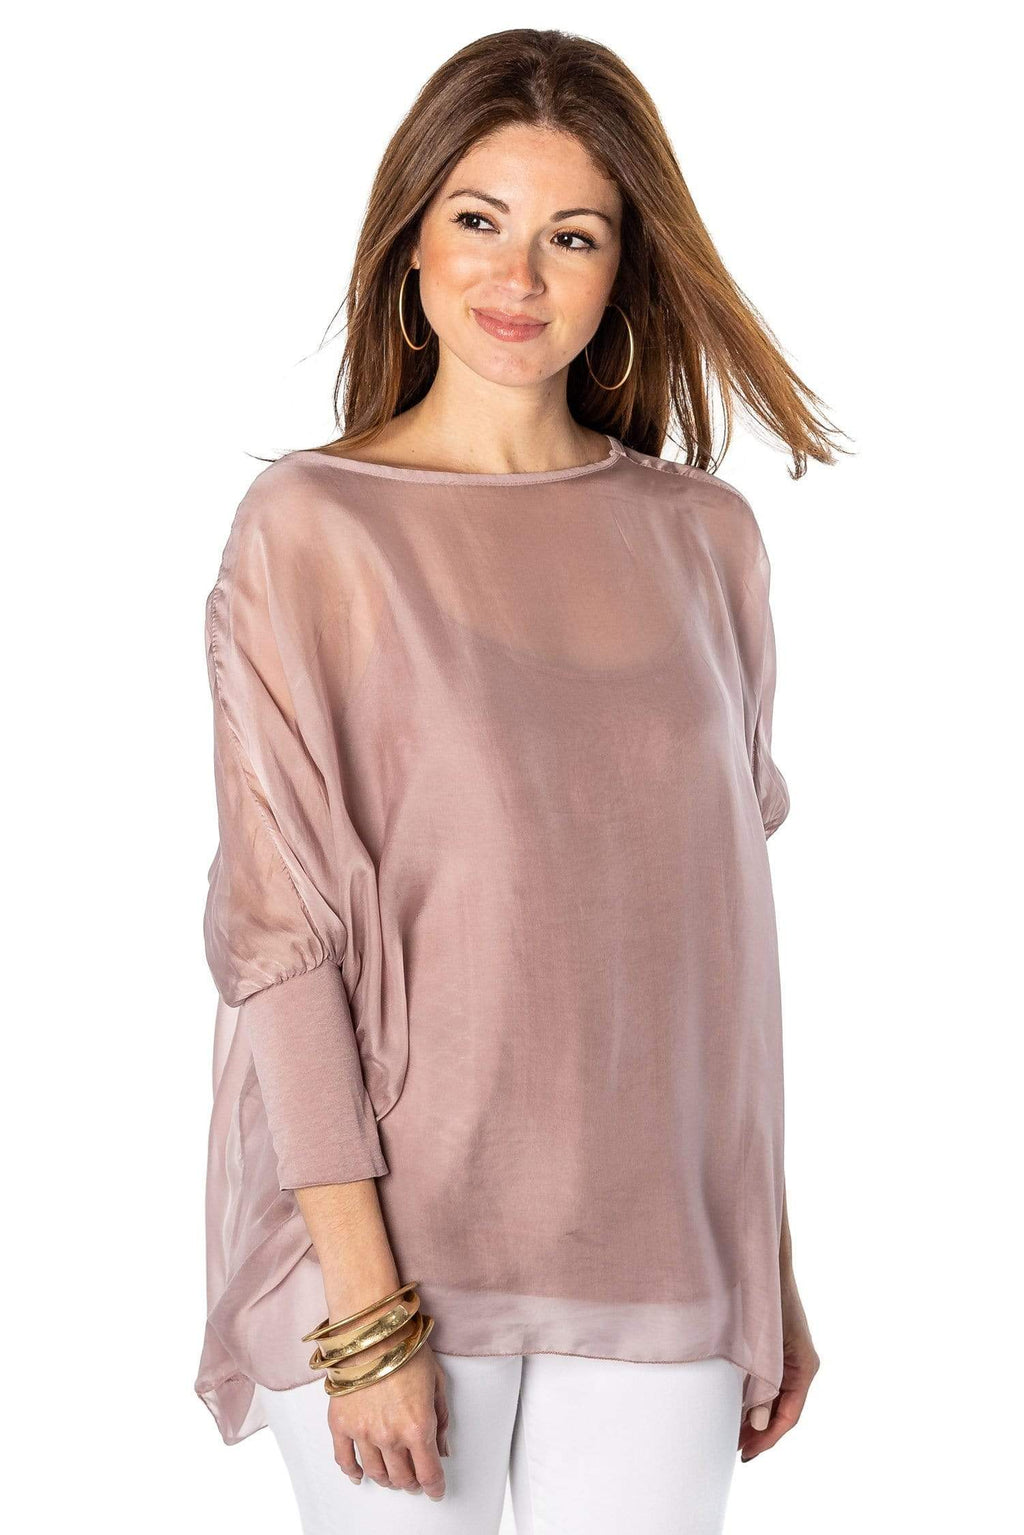 shop-sofia Sofia Blush Top Sofia Collections Italian Silk Linen Satin